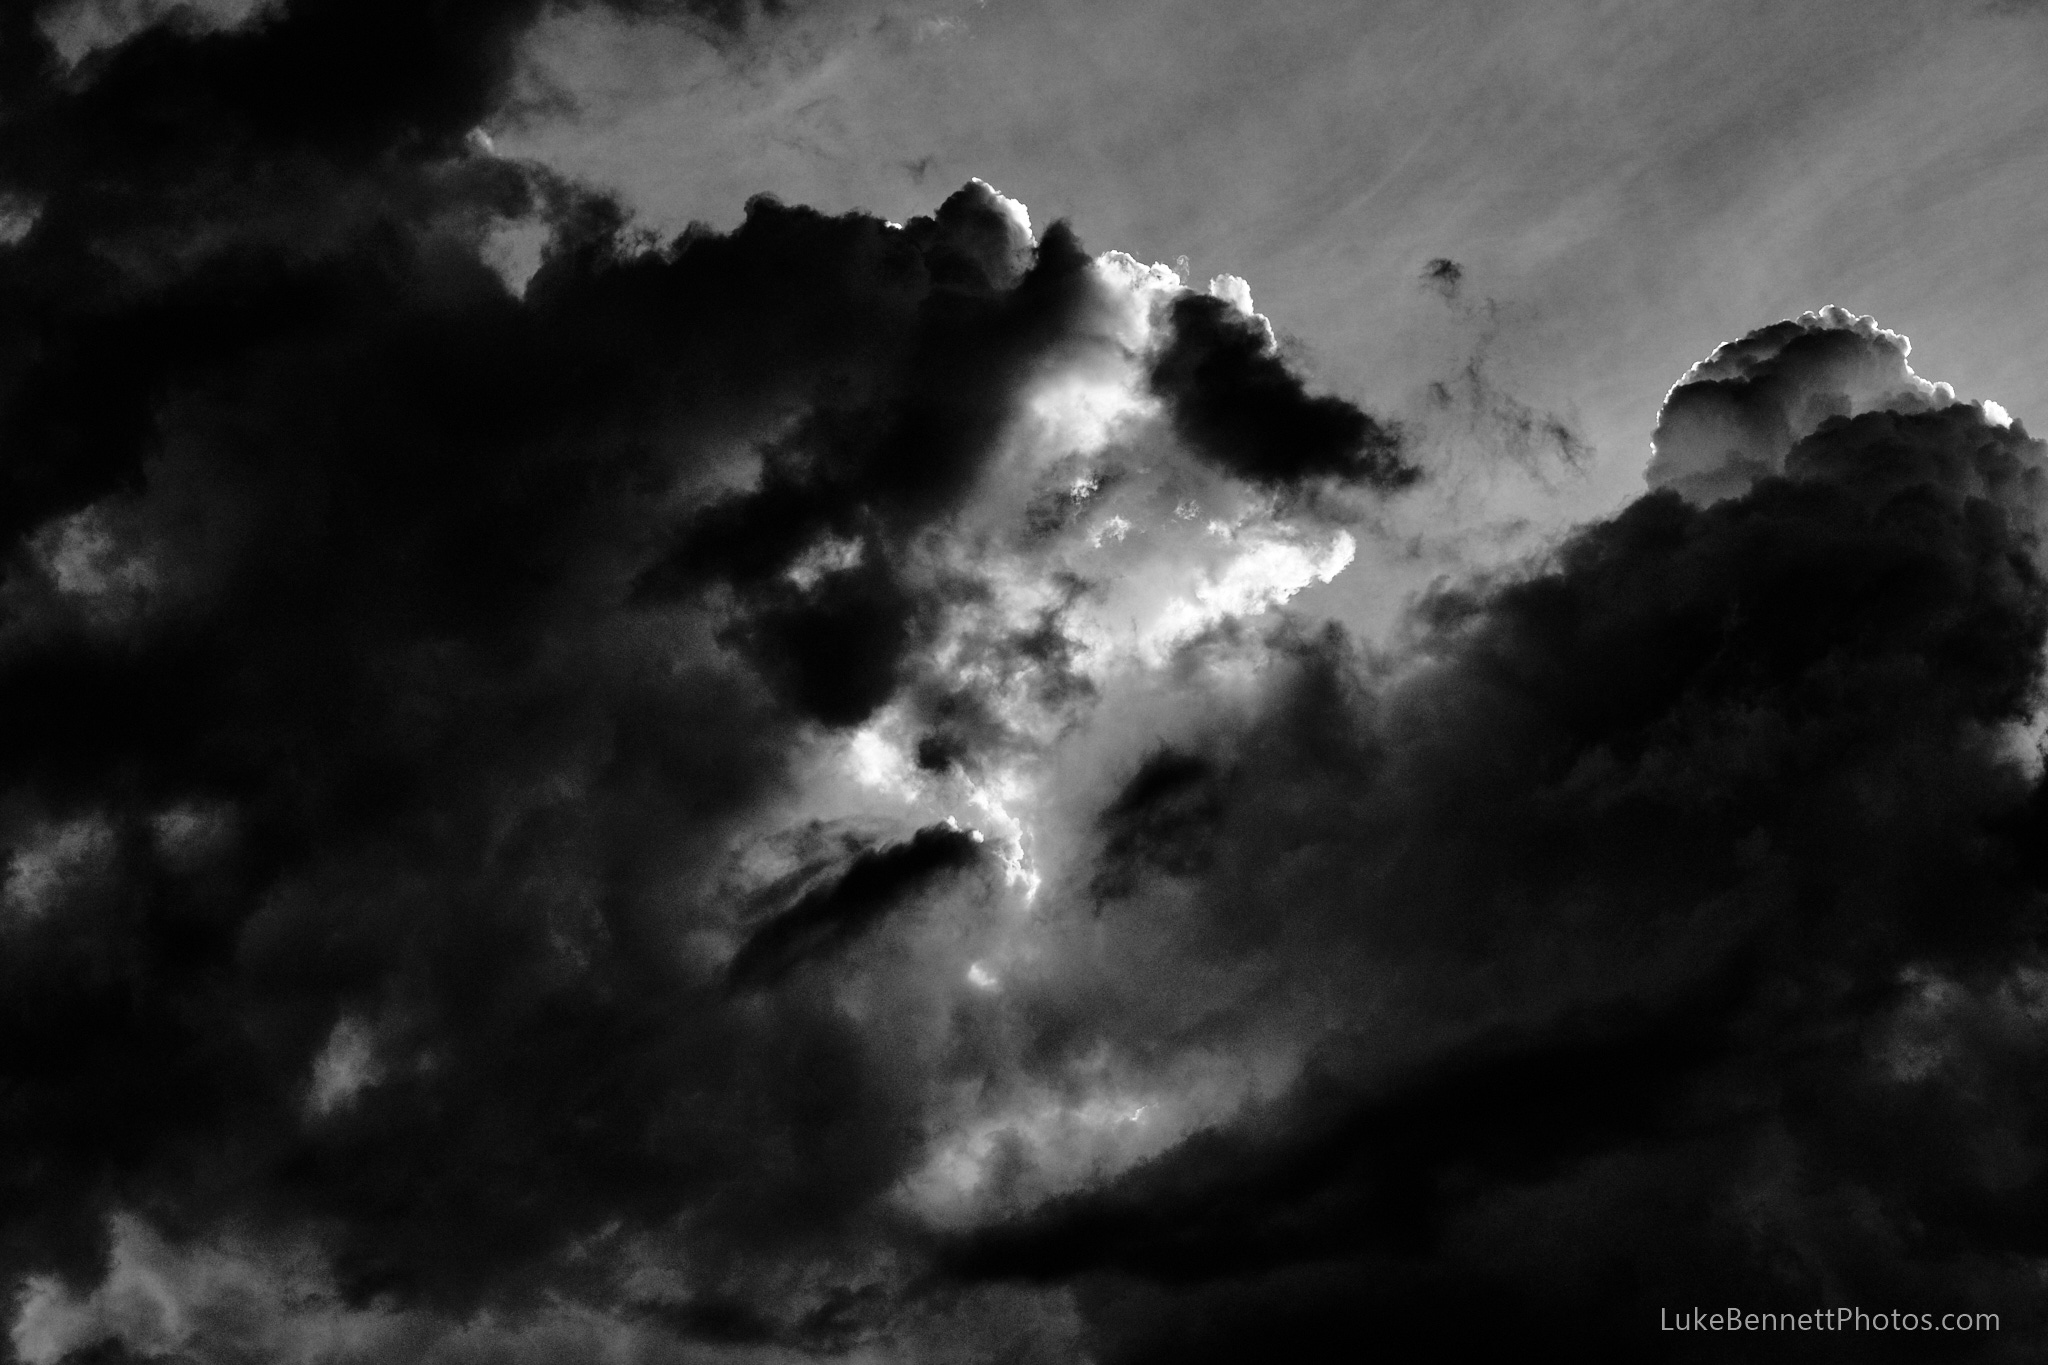 A Black and White Cloud Study